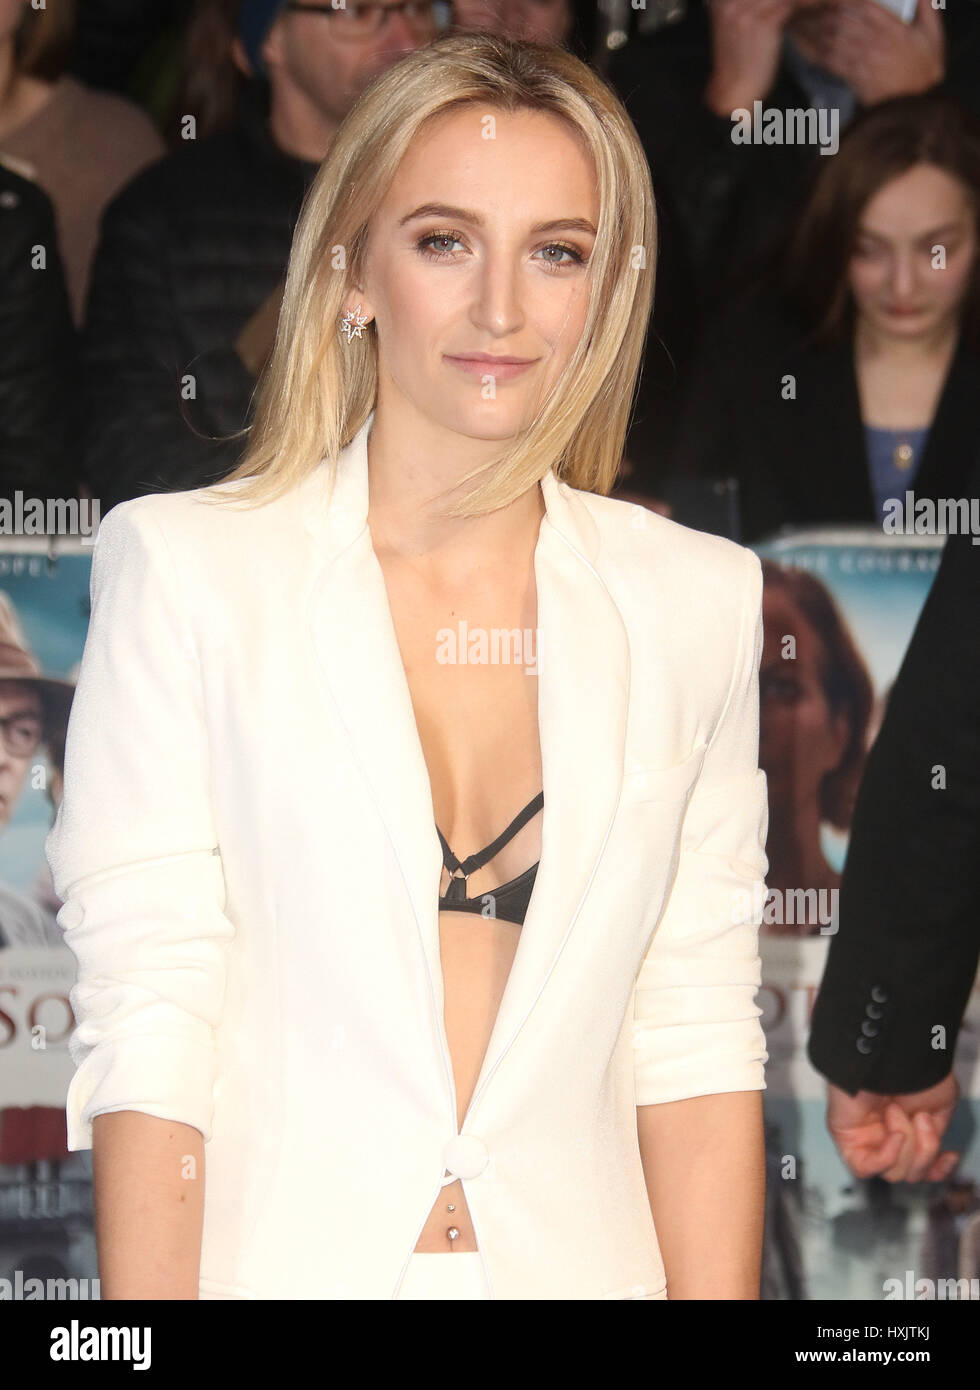 Mar 16, 2017 - Tiffany Watson attending Another Mother's Son' World Premiere, Odeon Leicester Square in - Stock Image